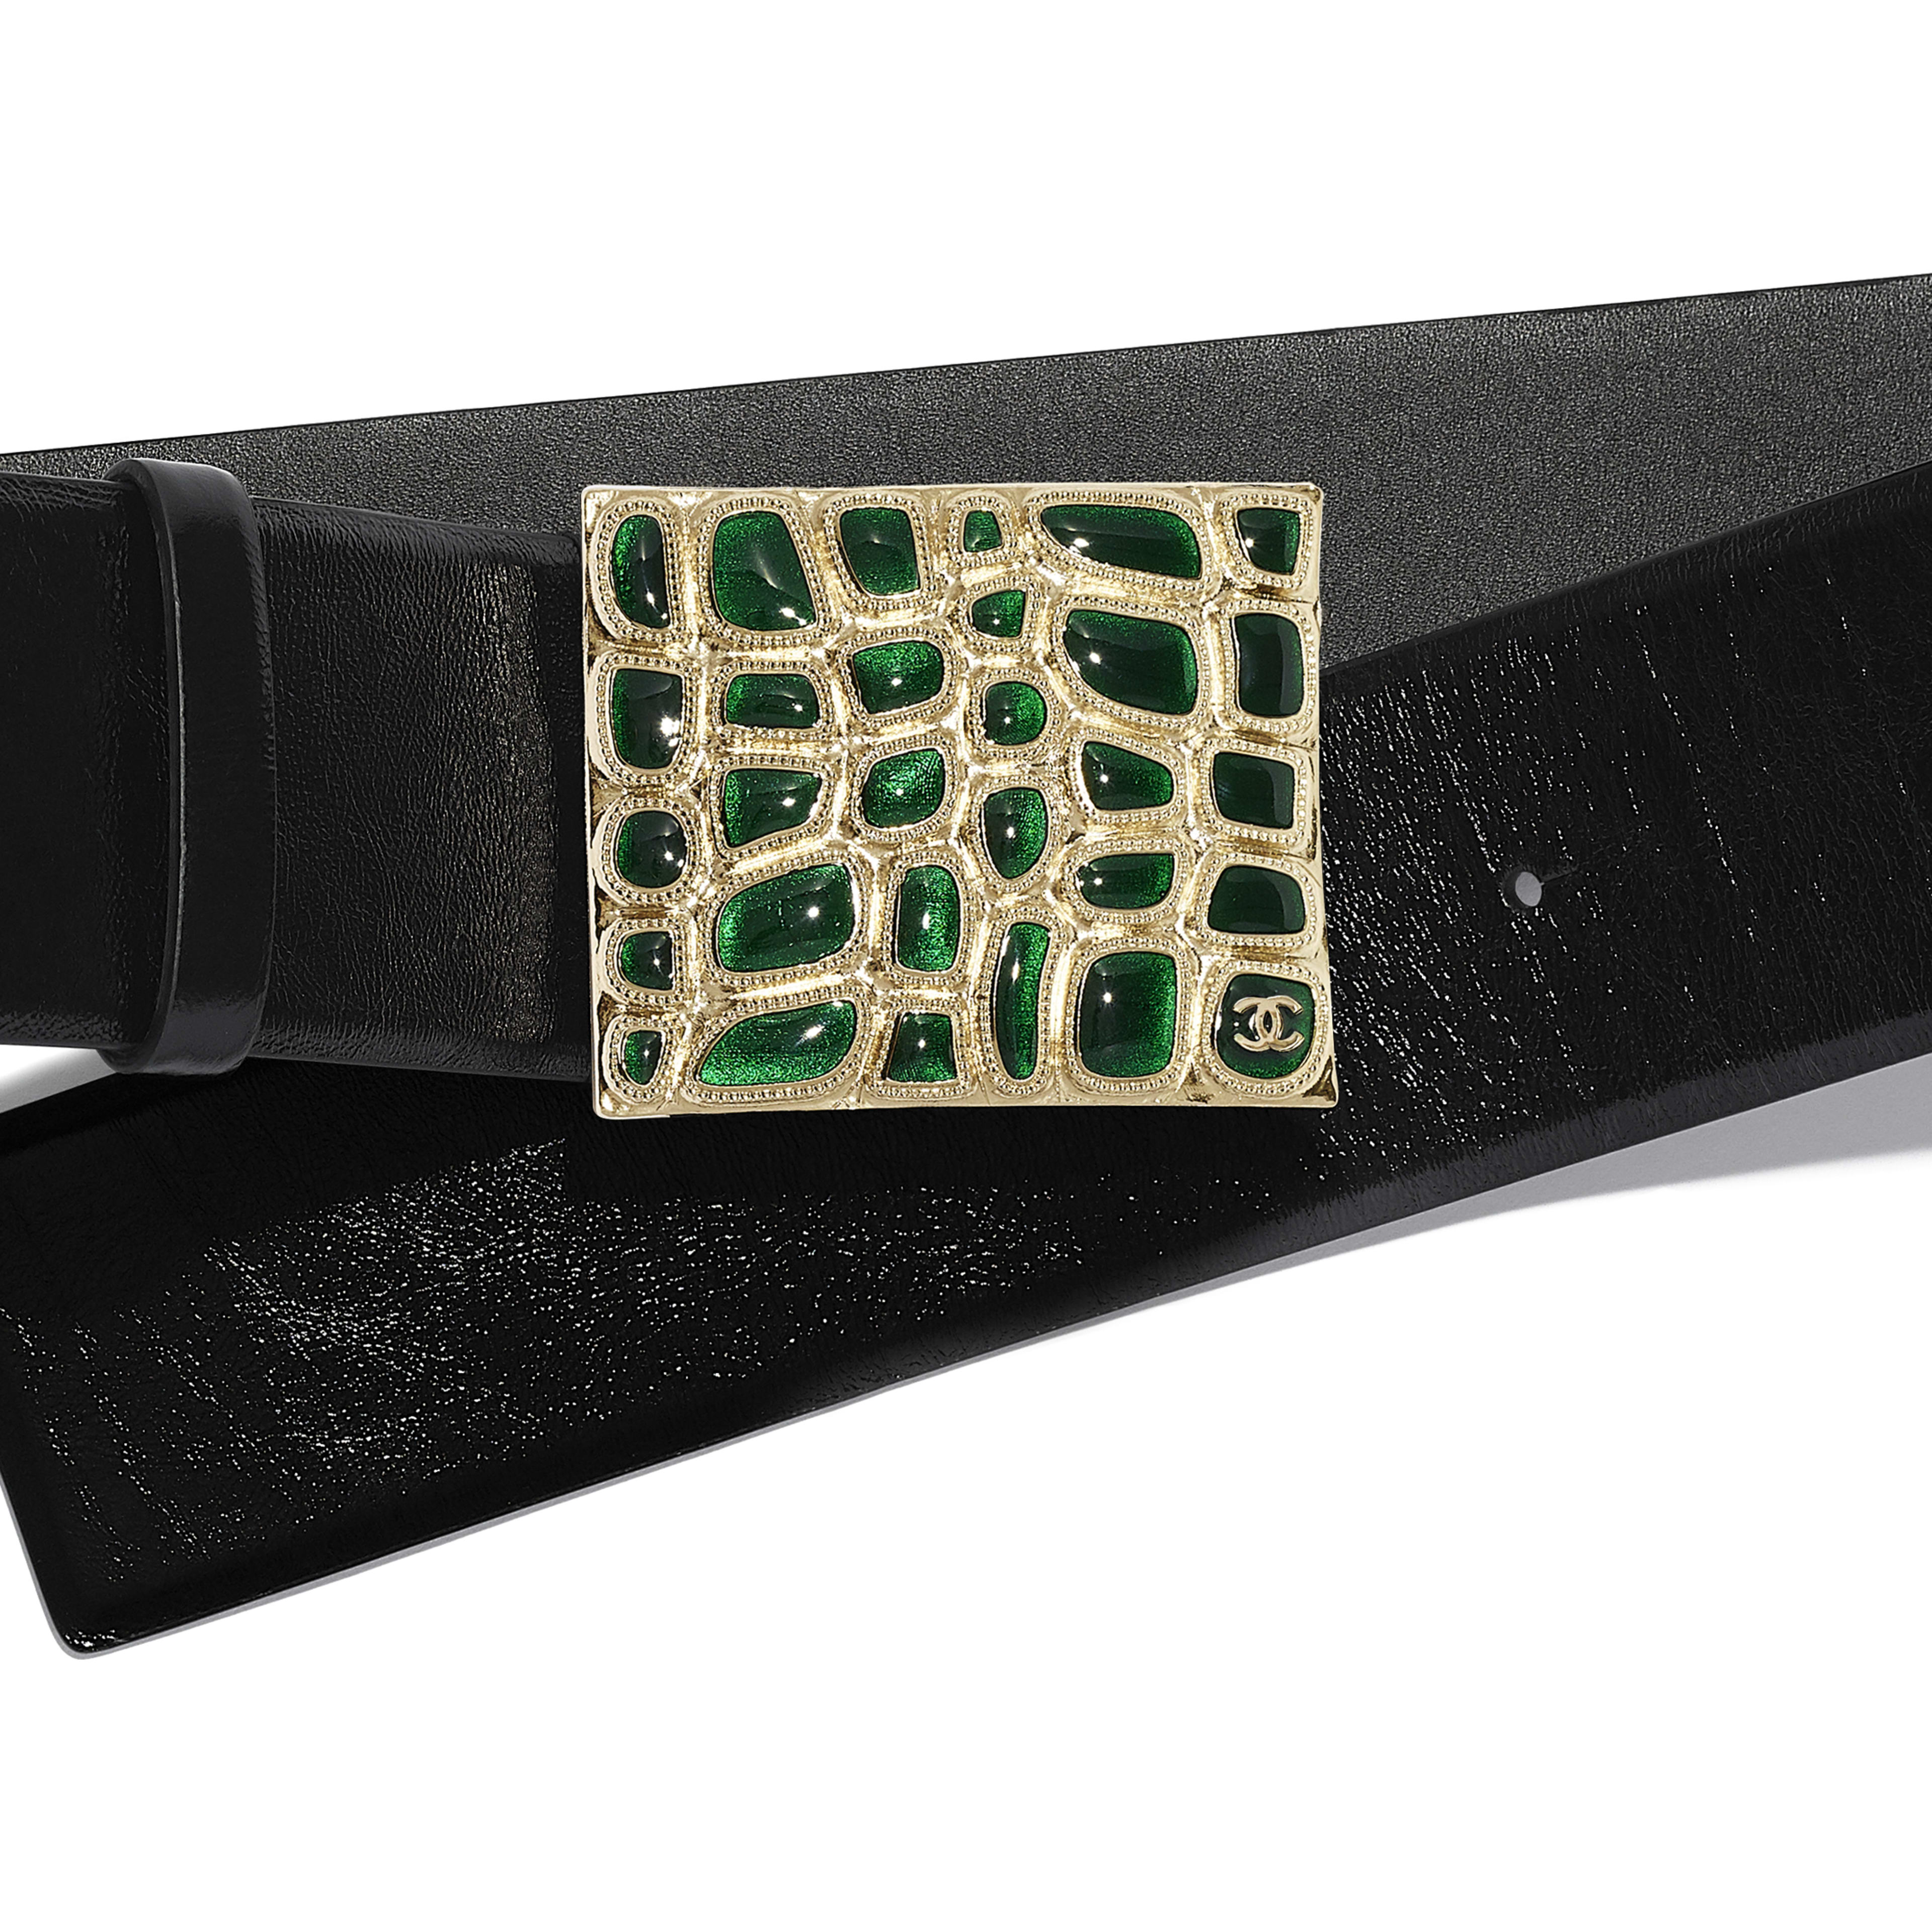 Belt - Black & Green - Calfskin, Gold-Tone Metal & Resin - Alternative view - see full sized version